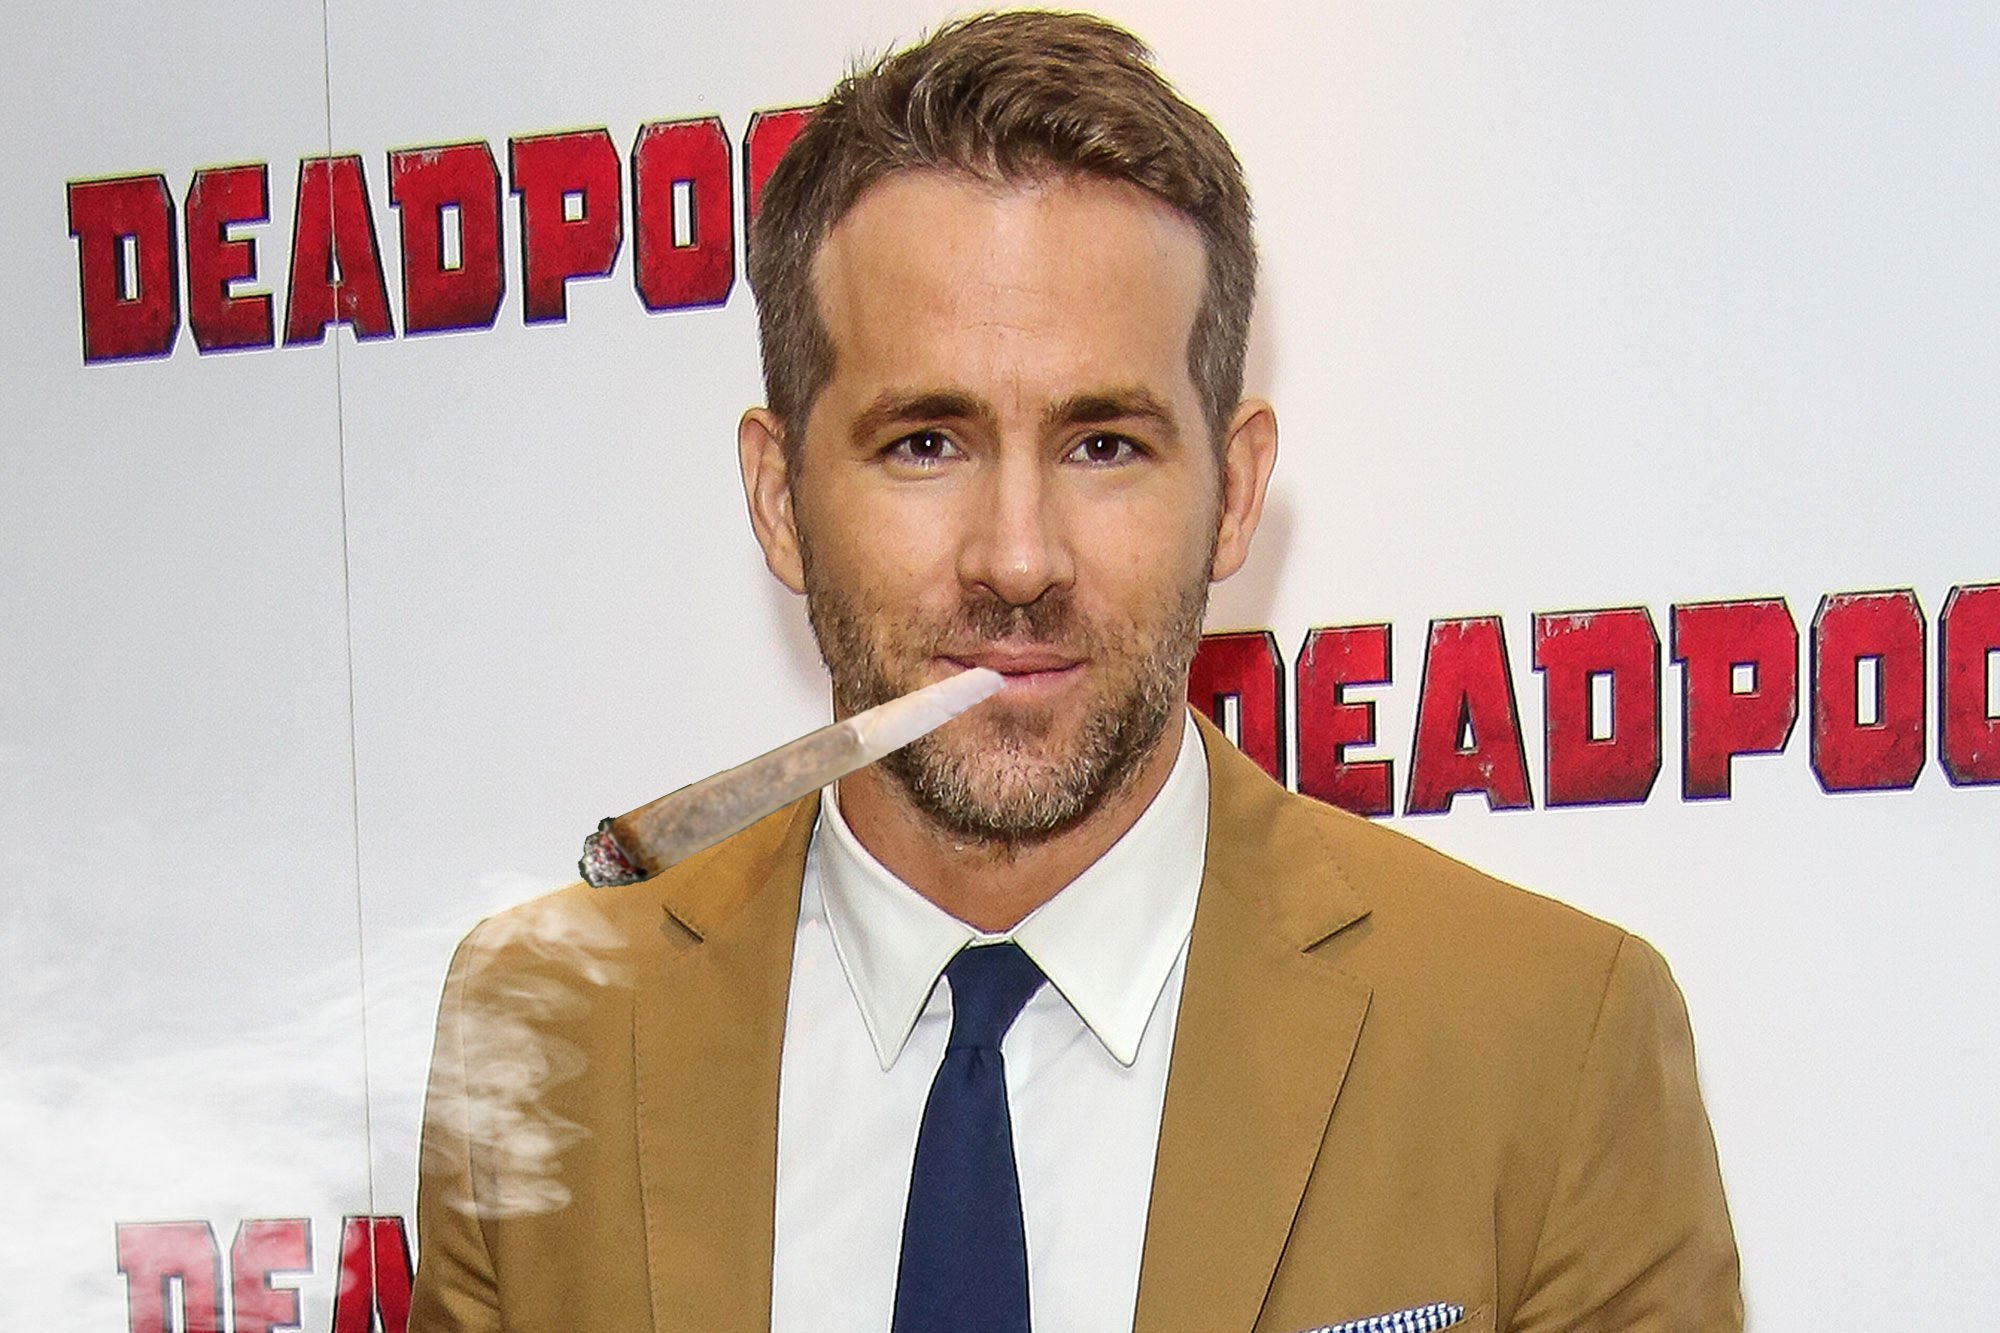 Ryan Reynolds to star in R-rated Home Alone reimagining Stoned Alone screenshot